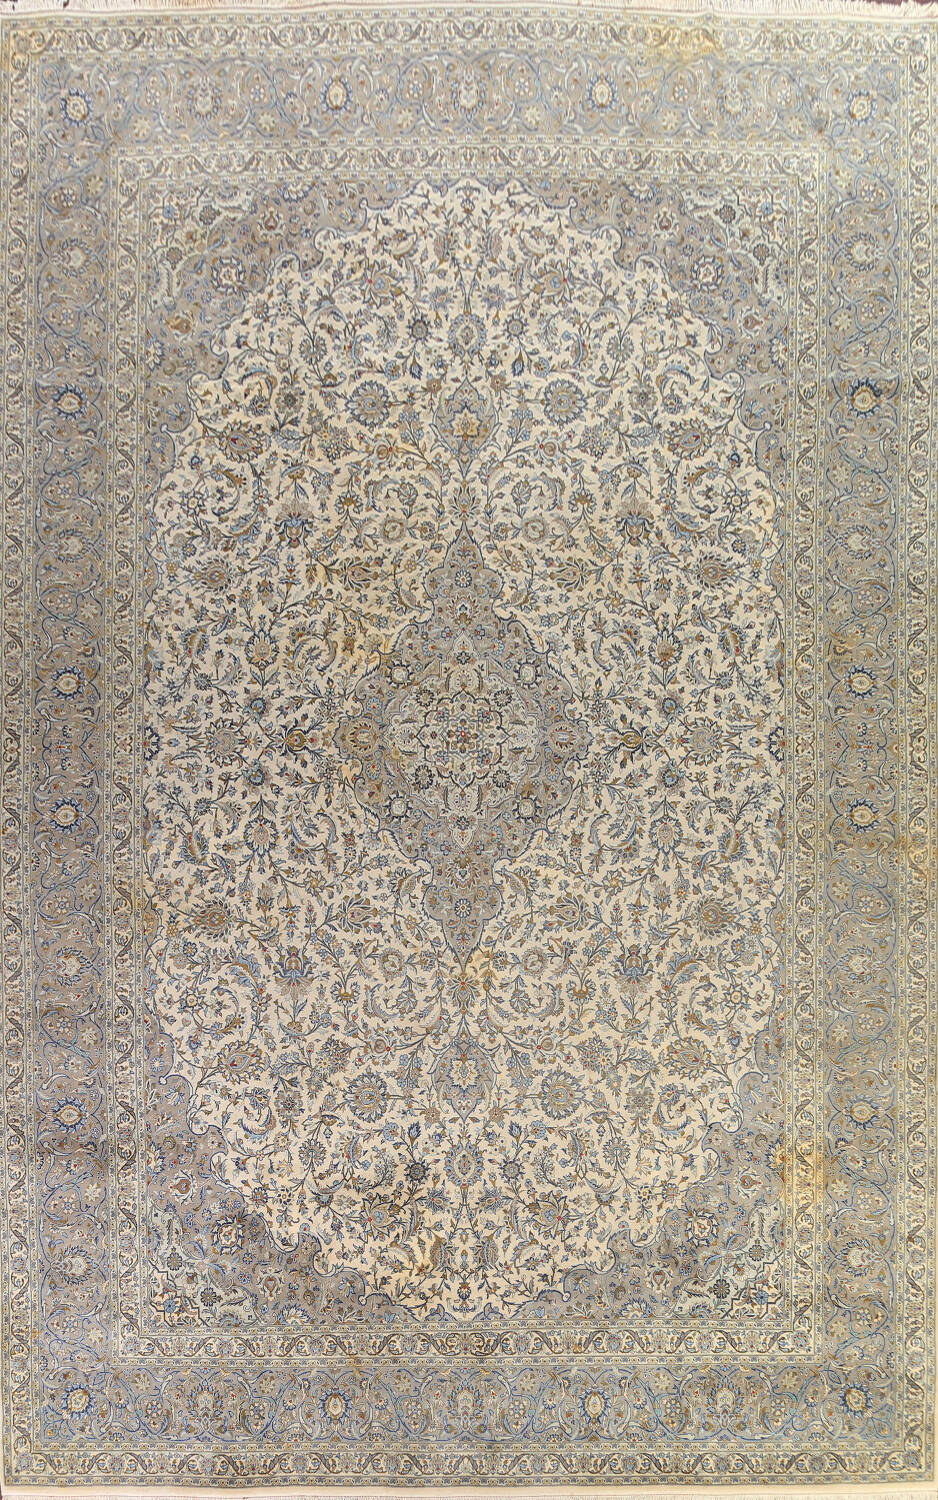 Traditional Floral Kashan Persian Area Rug 13x20 image 1